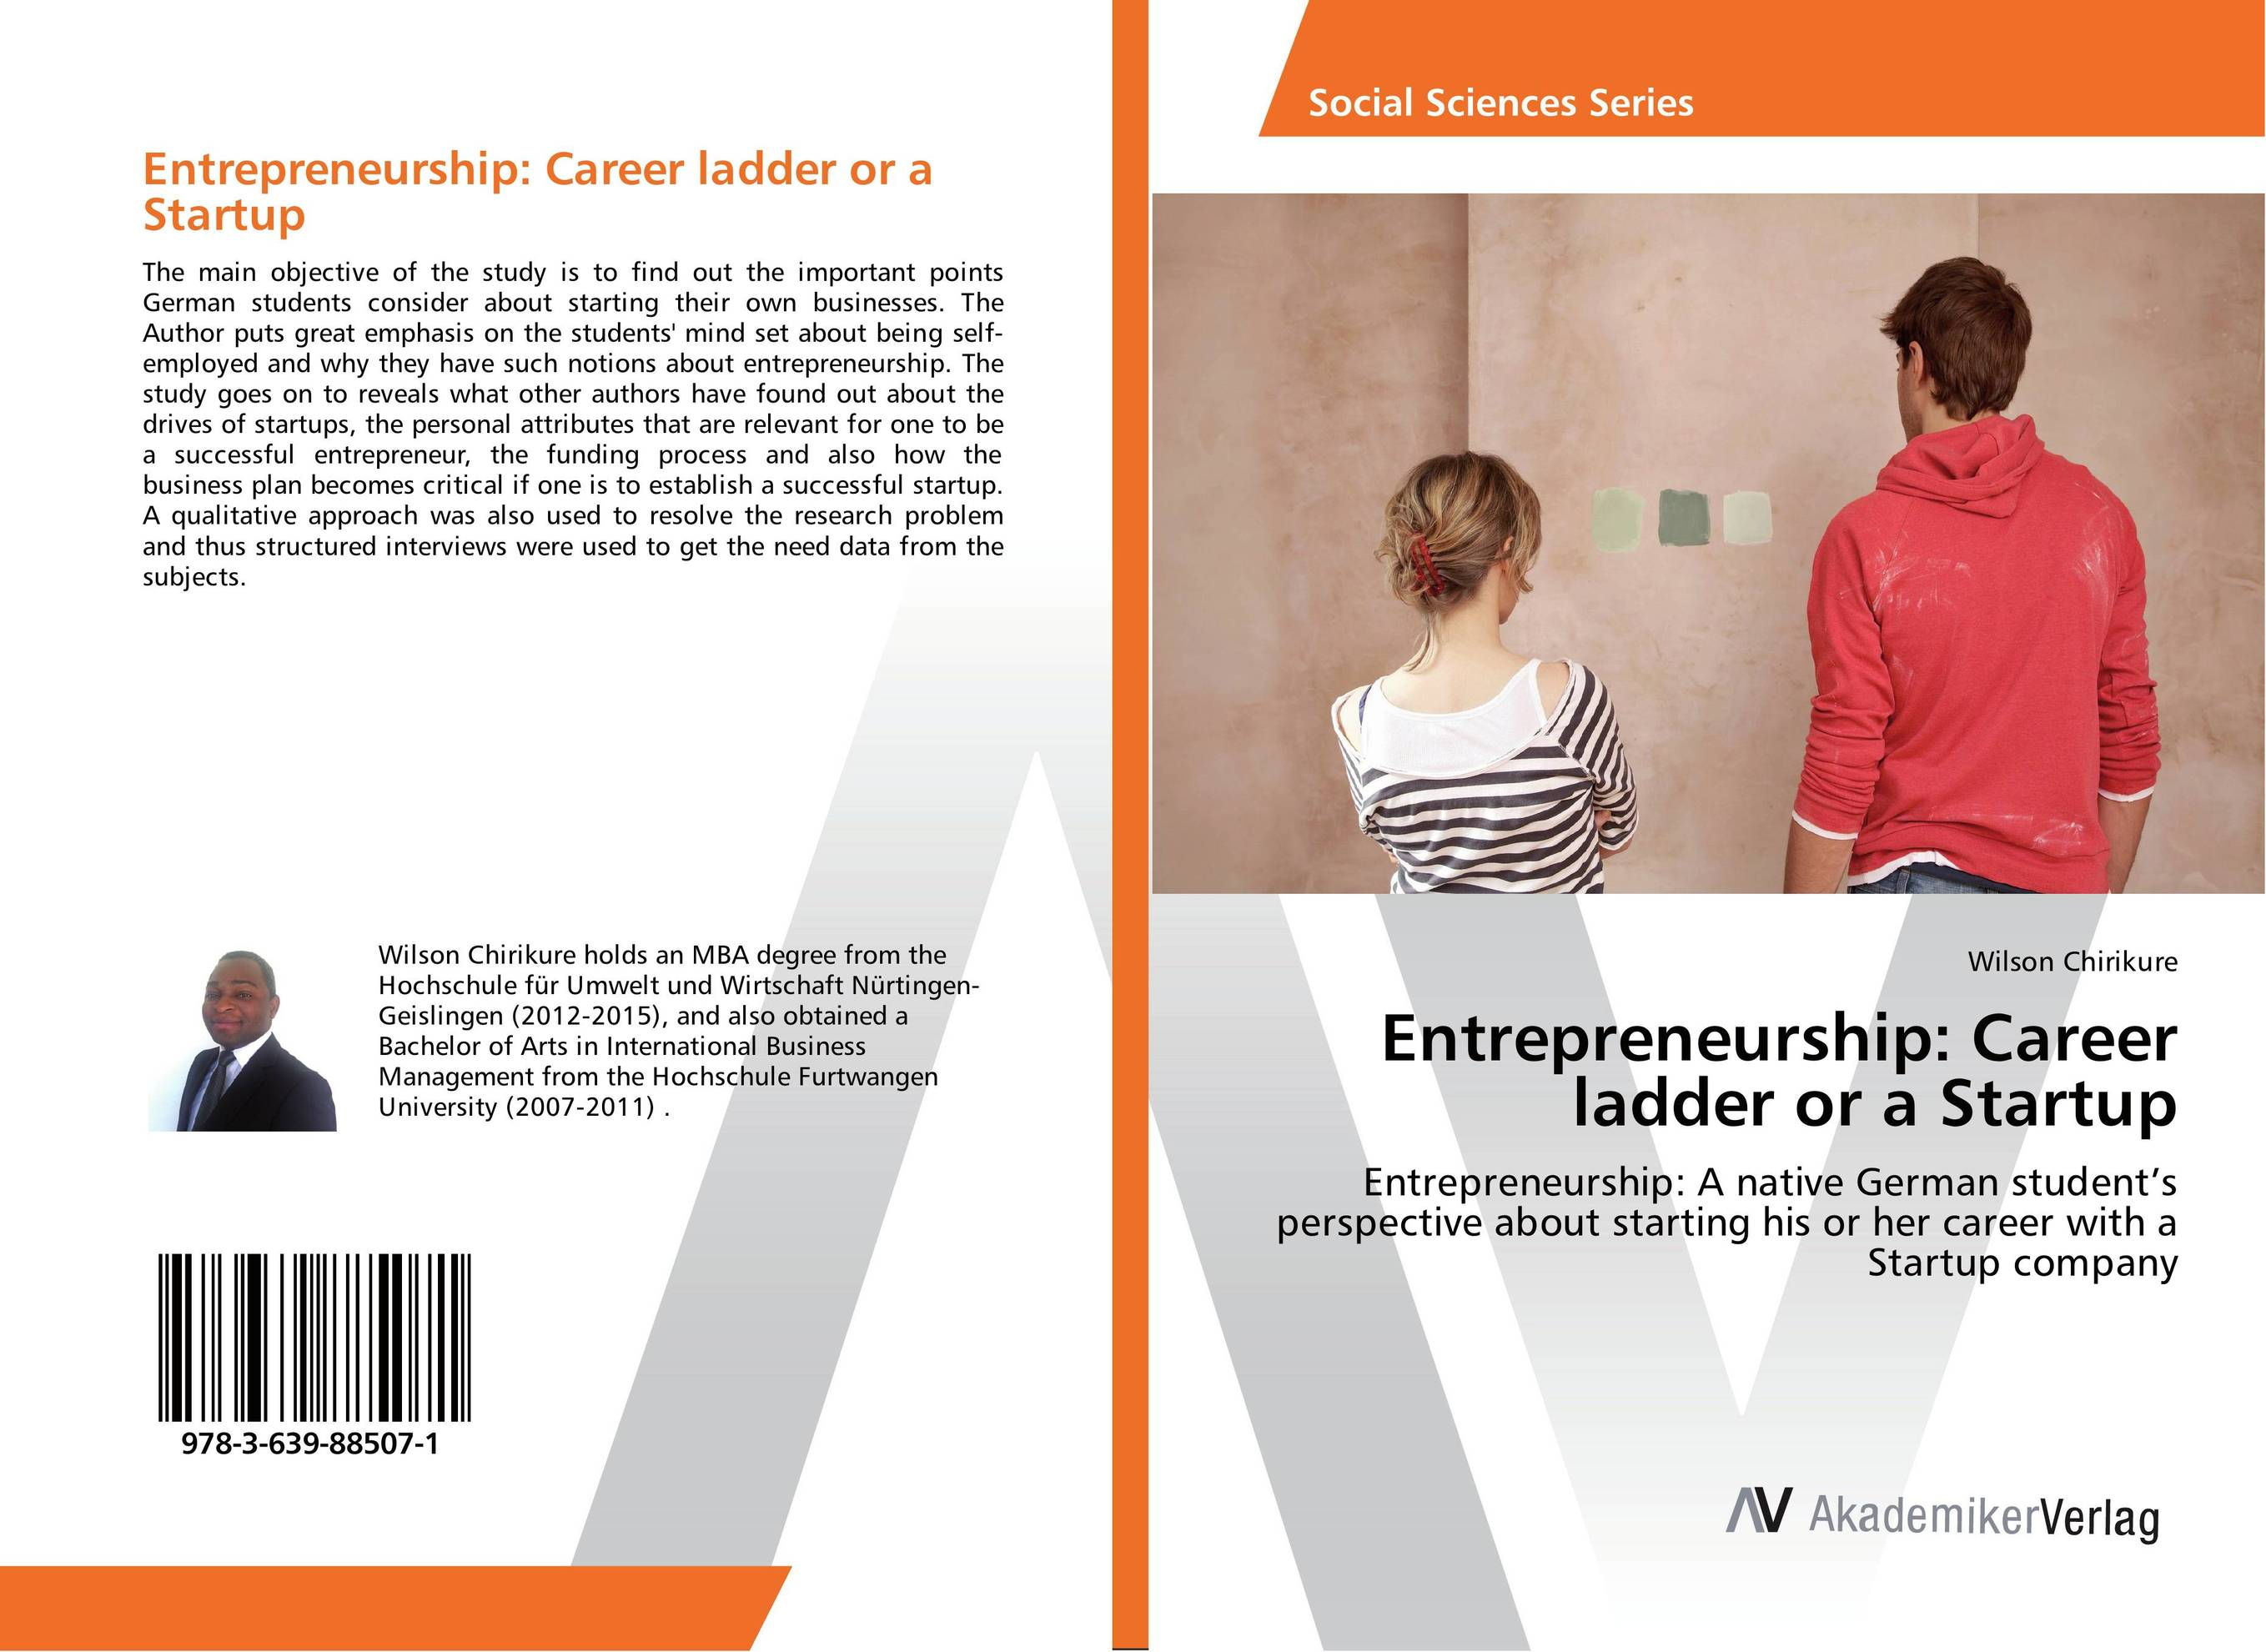 Entrepreneurship: Career ladder or a Startup